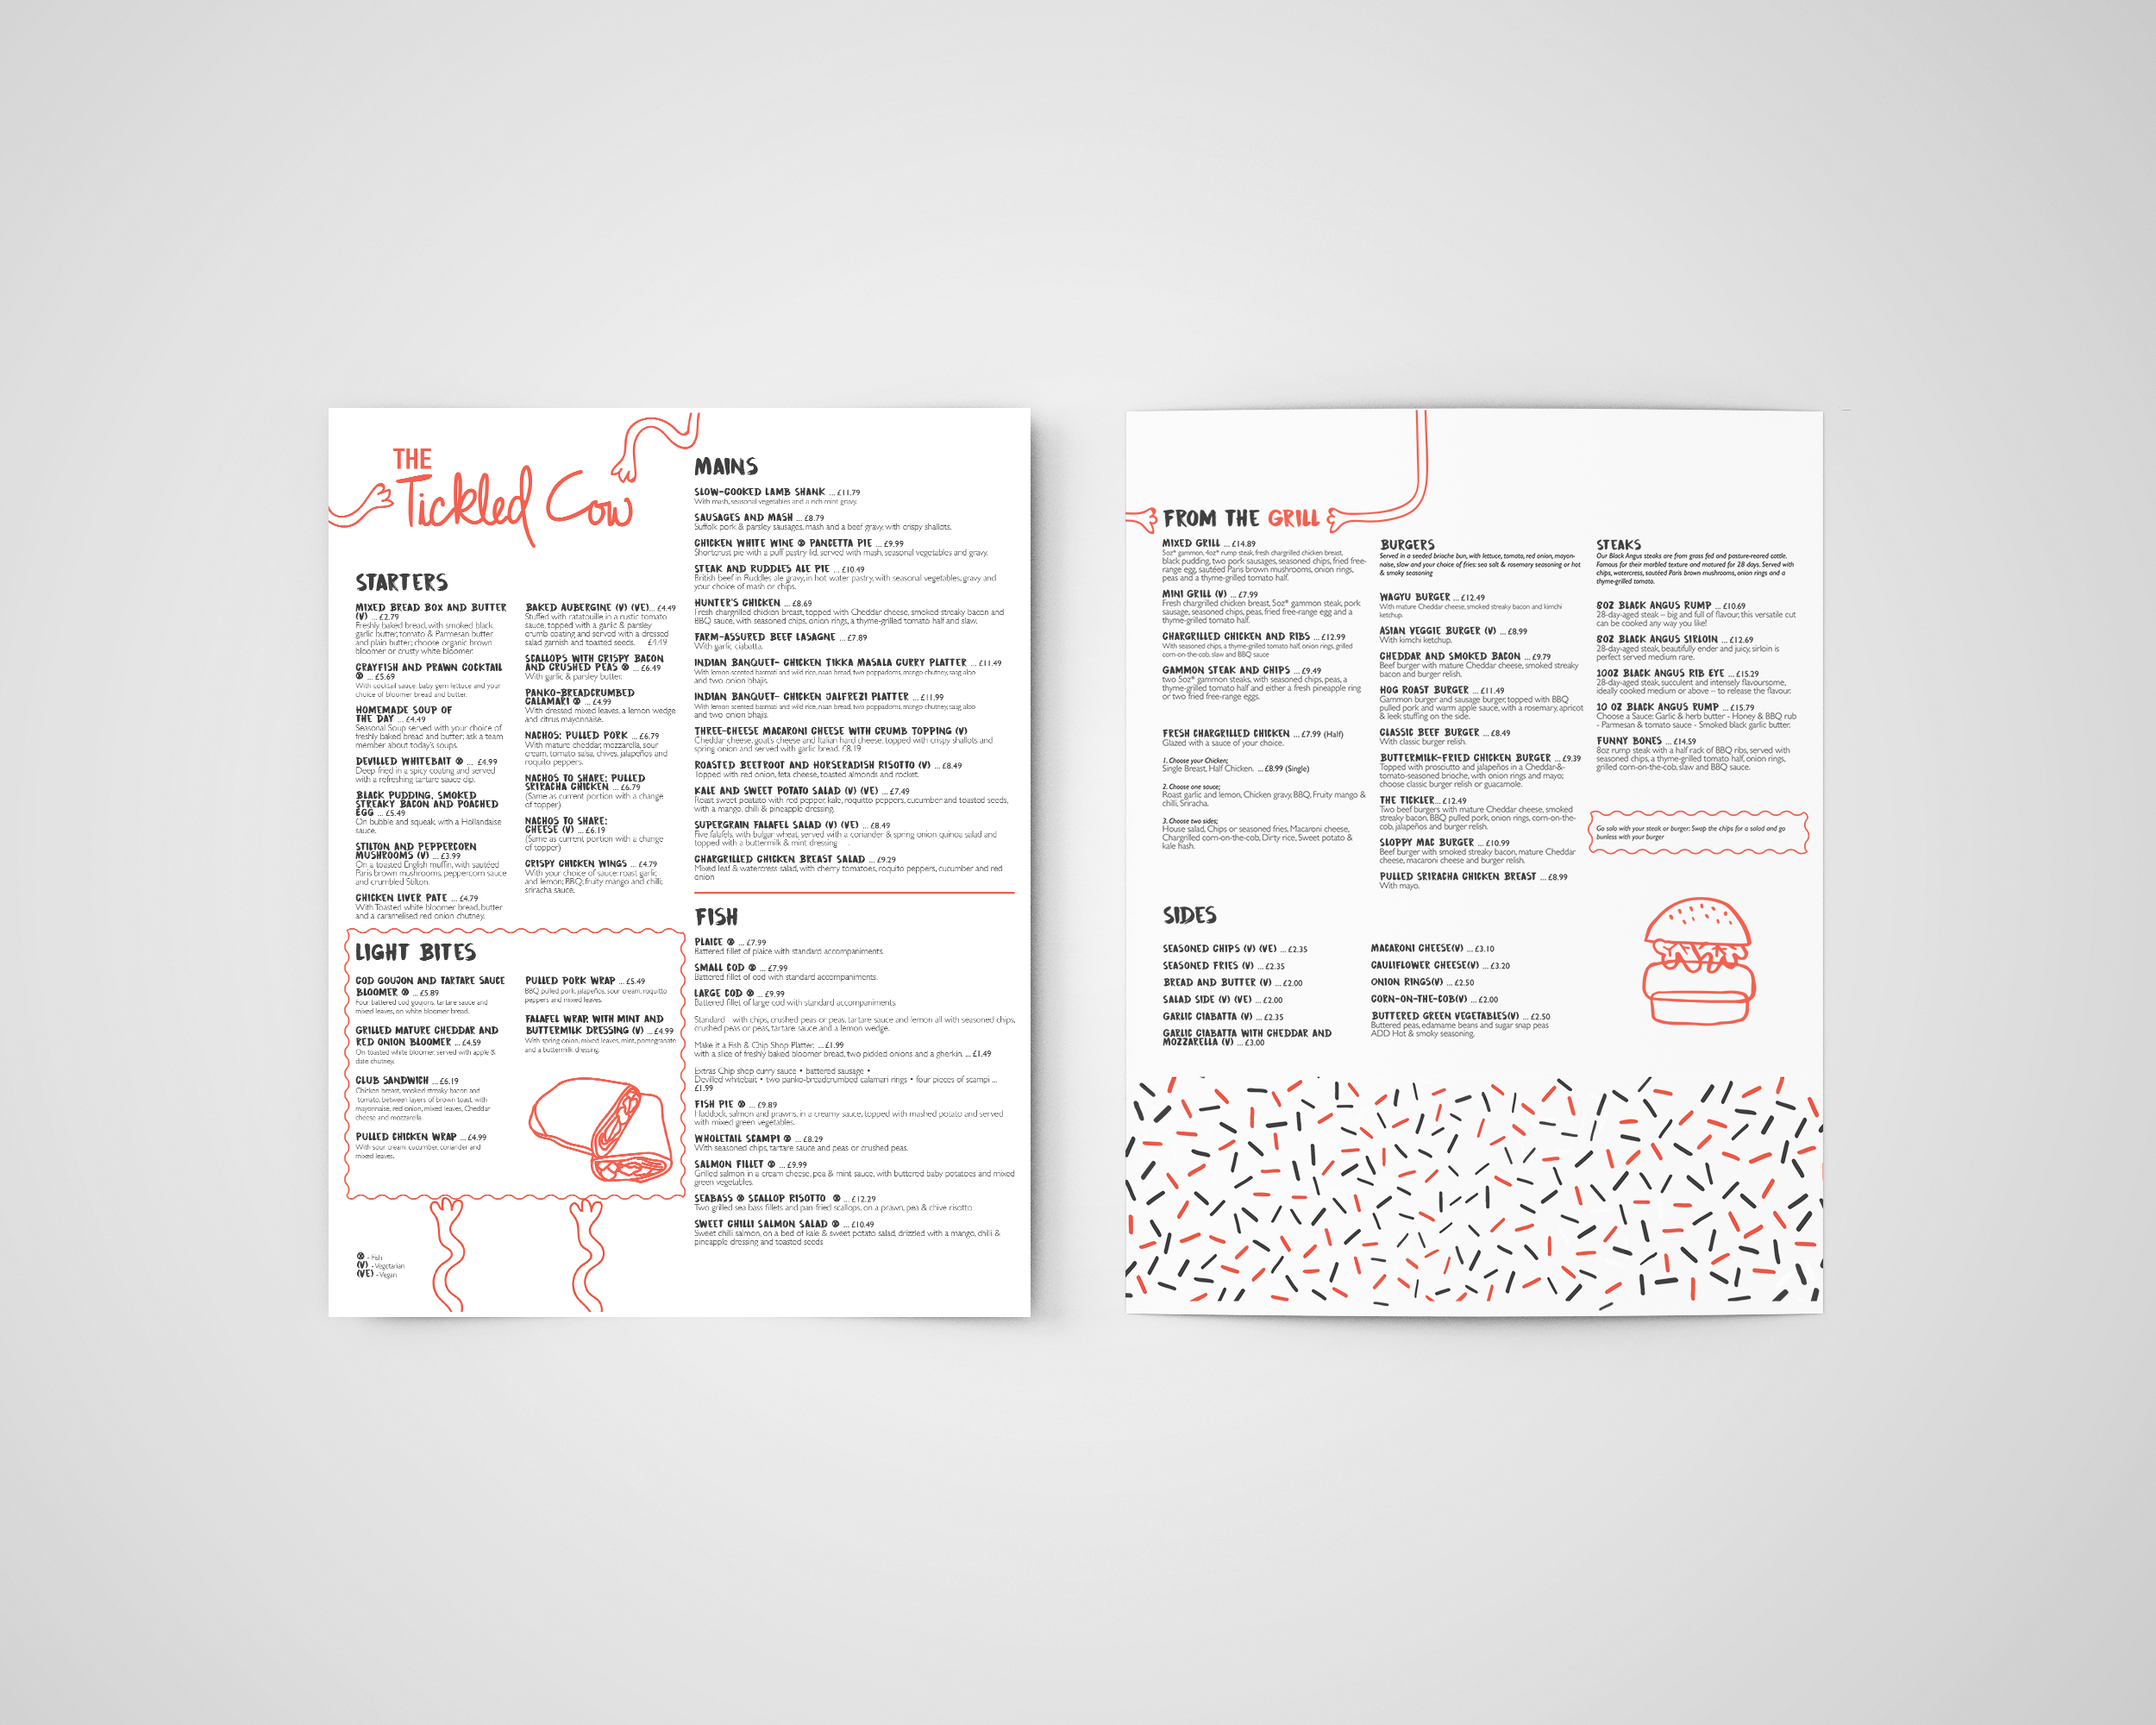 The Tickled Cow  _____  This brief focussed on a new Soho restaurant launch. A Full identity was created focusing on menu design and branding. The brand image has been thoughtfully considered to portray a fun and playfulness to avoid the cliché approach many bar and grill restaurants fall into.